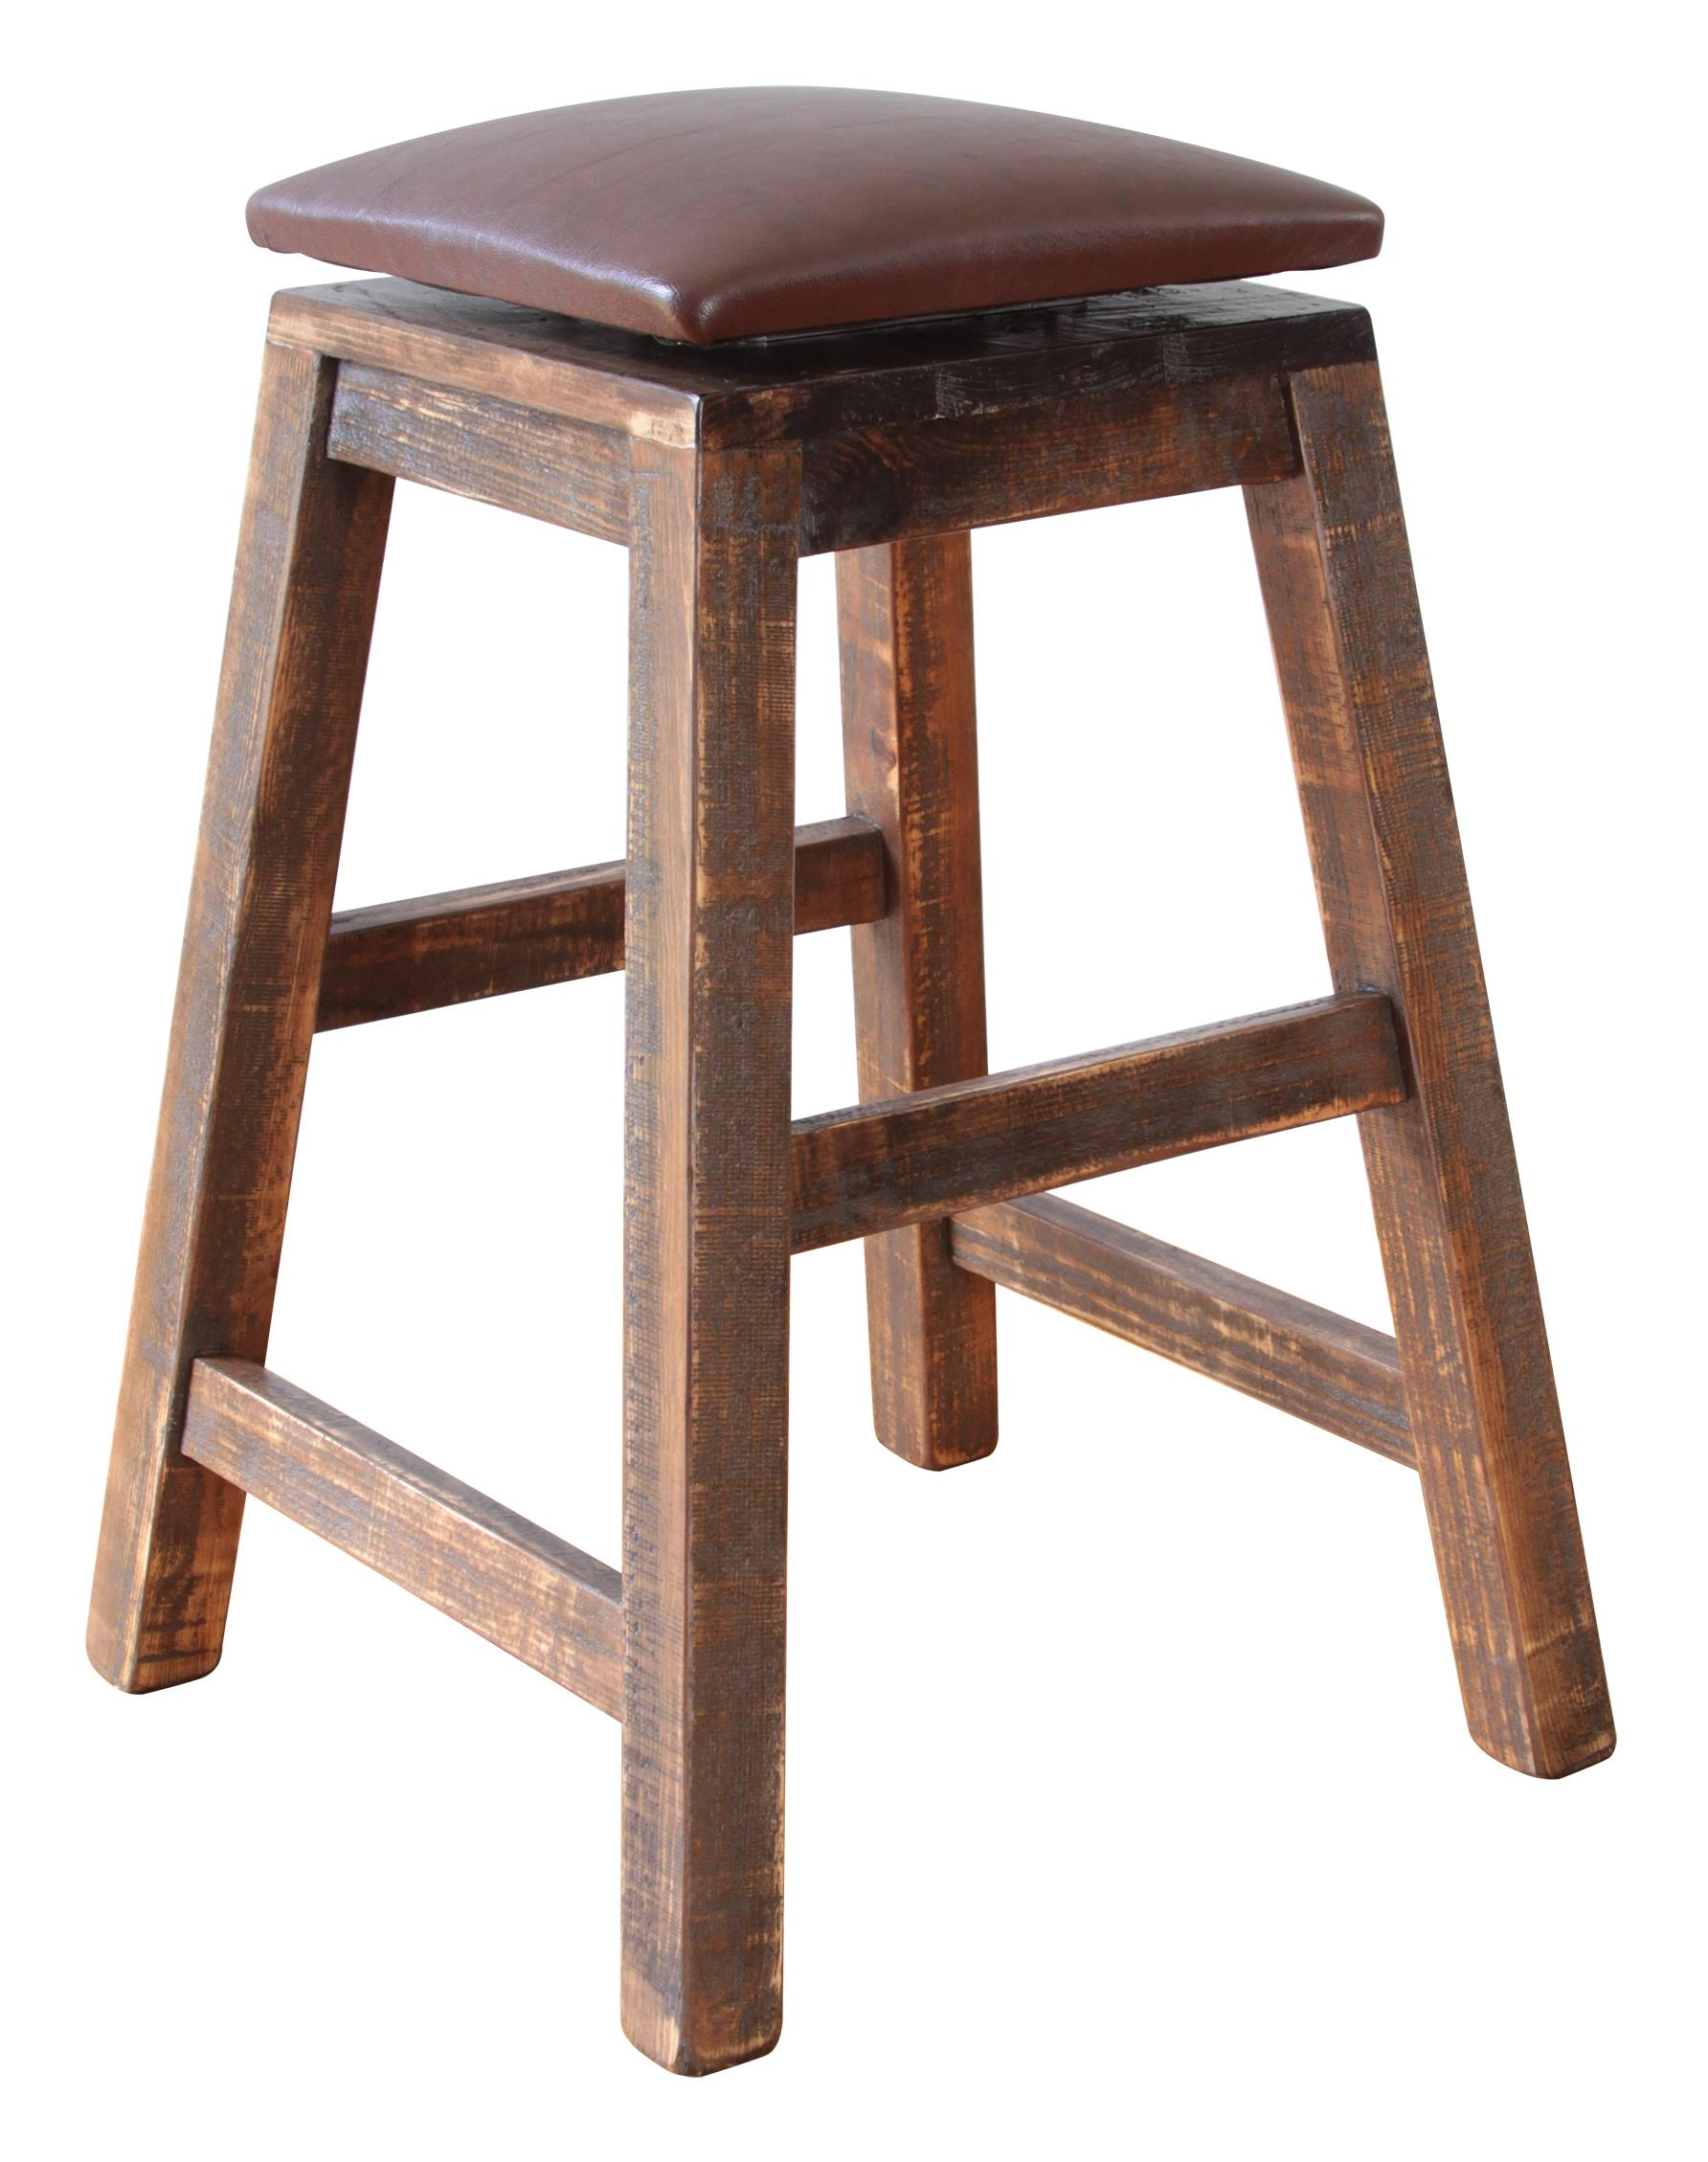 "International Furniture Direct 900 Antique 24"" Swivel Stool - For Counter Height Tables - Item Number: IFD967STOOL-24"